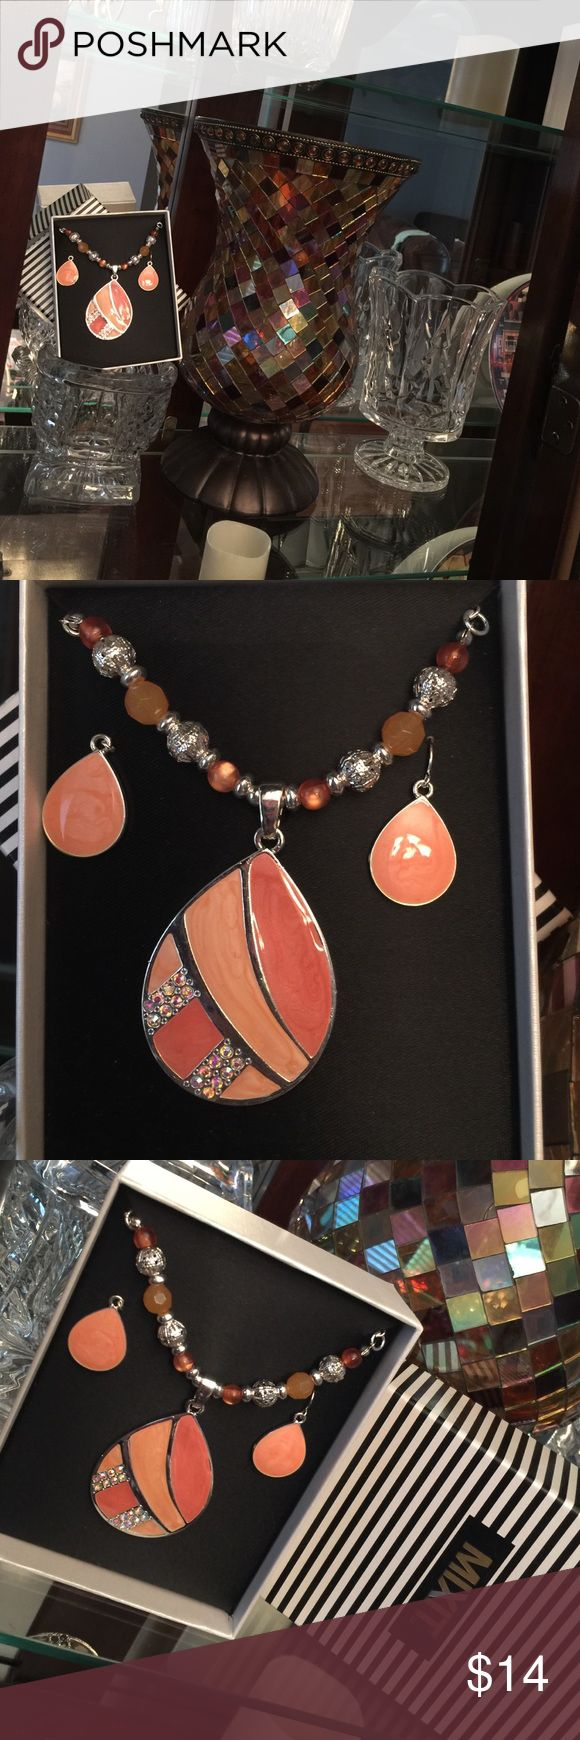 Necklace & Earring Bundle NWT NEVER WORN🎉. Great conversation starter💞. Gorgeous color design😍 Jewelry